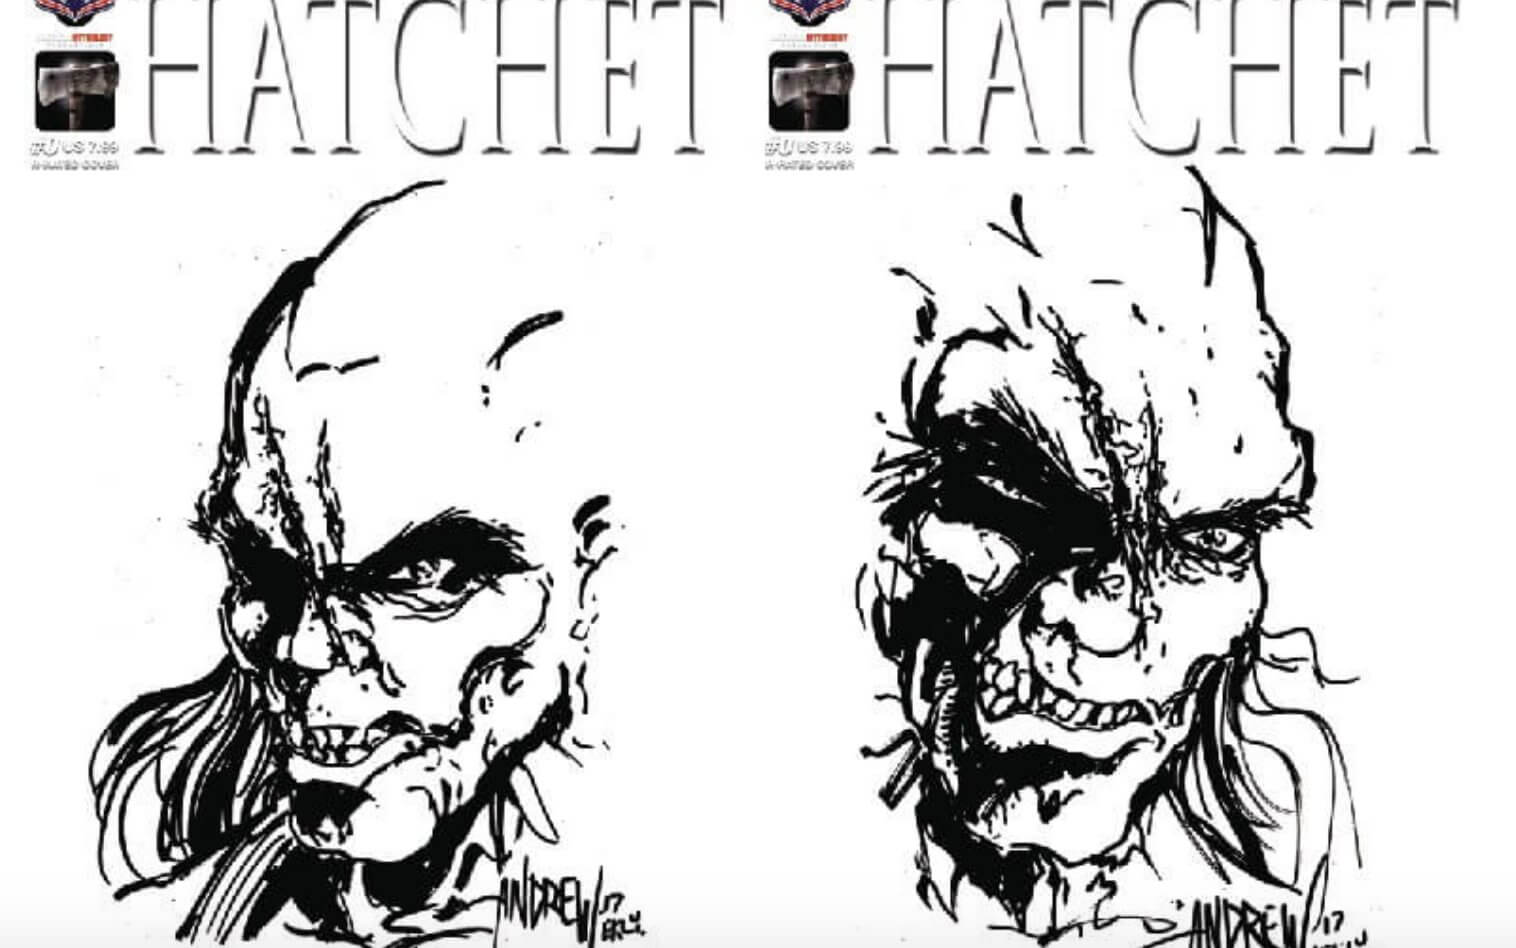 hatchet issue 0 1 - Victor Crowley Flashes His Good Looks in Hatchet #0 Covers